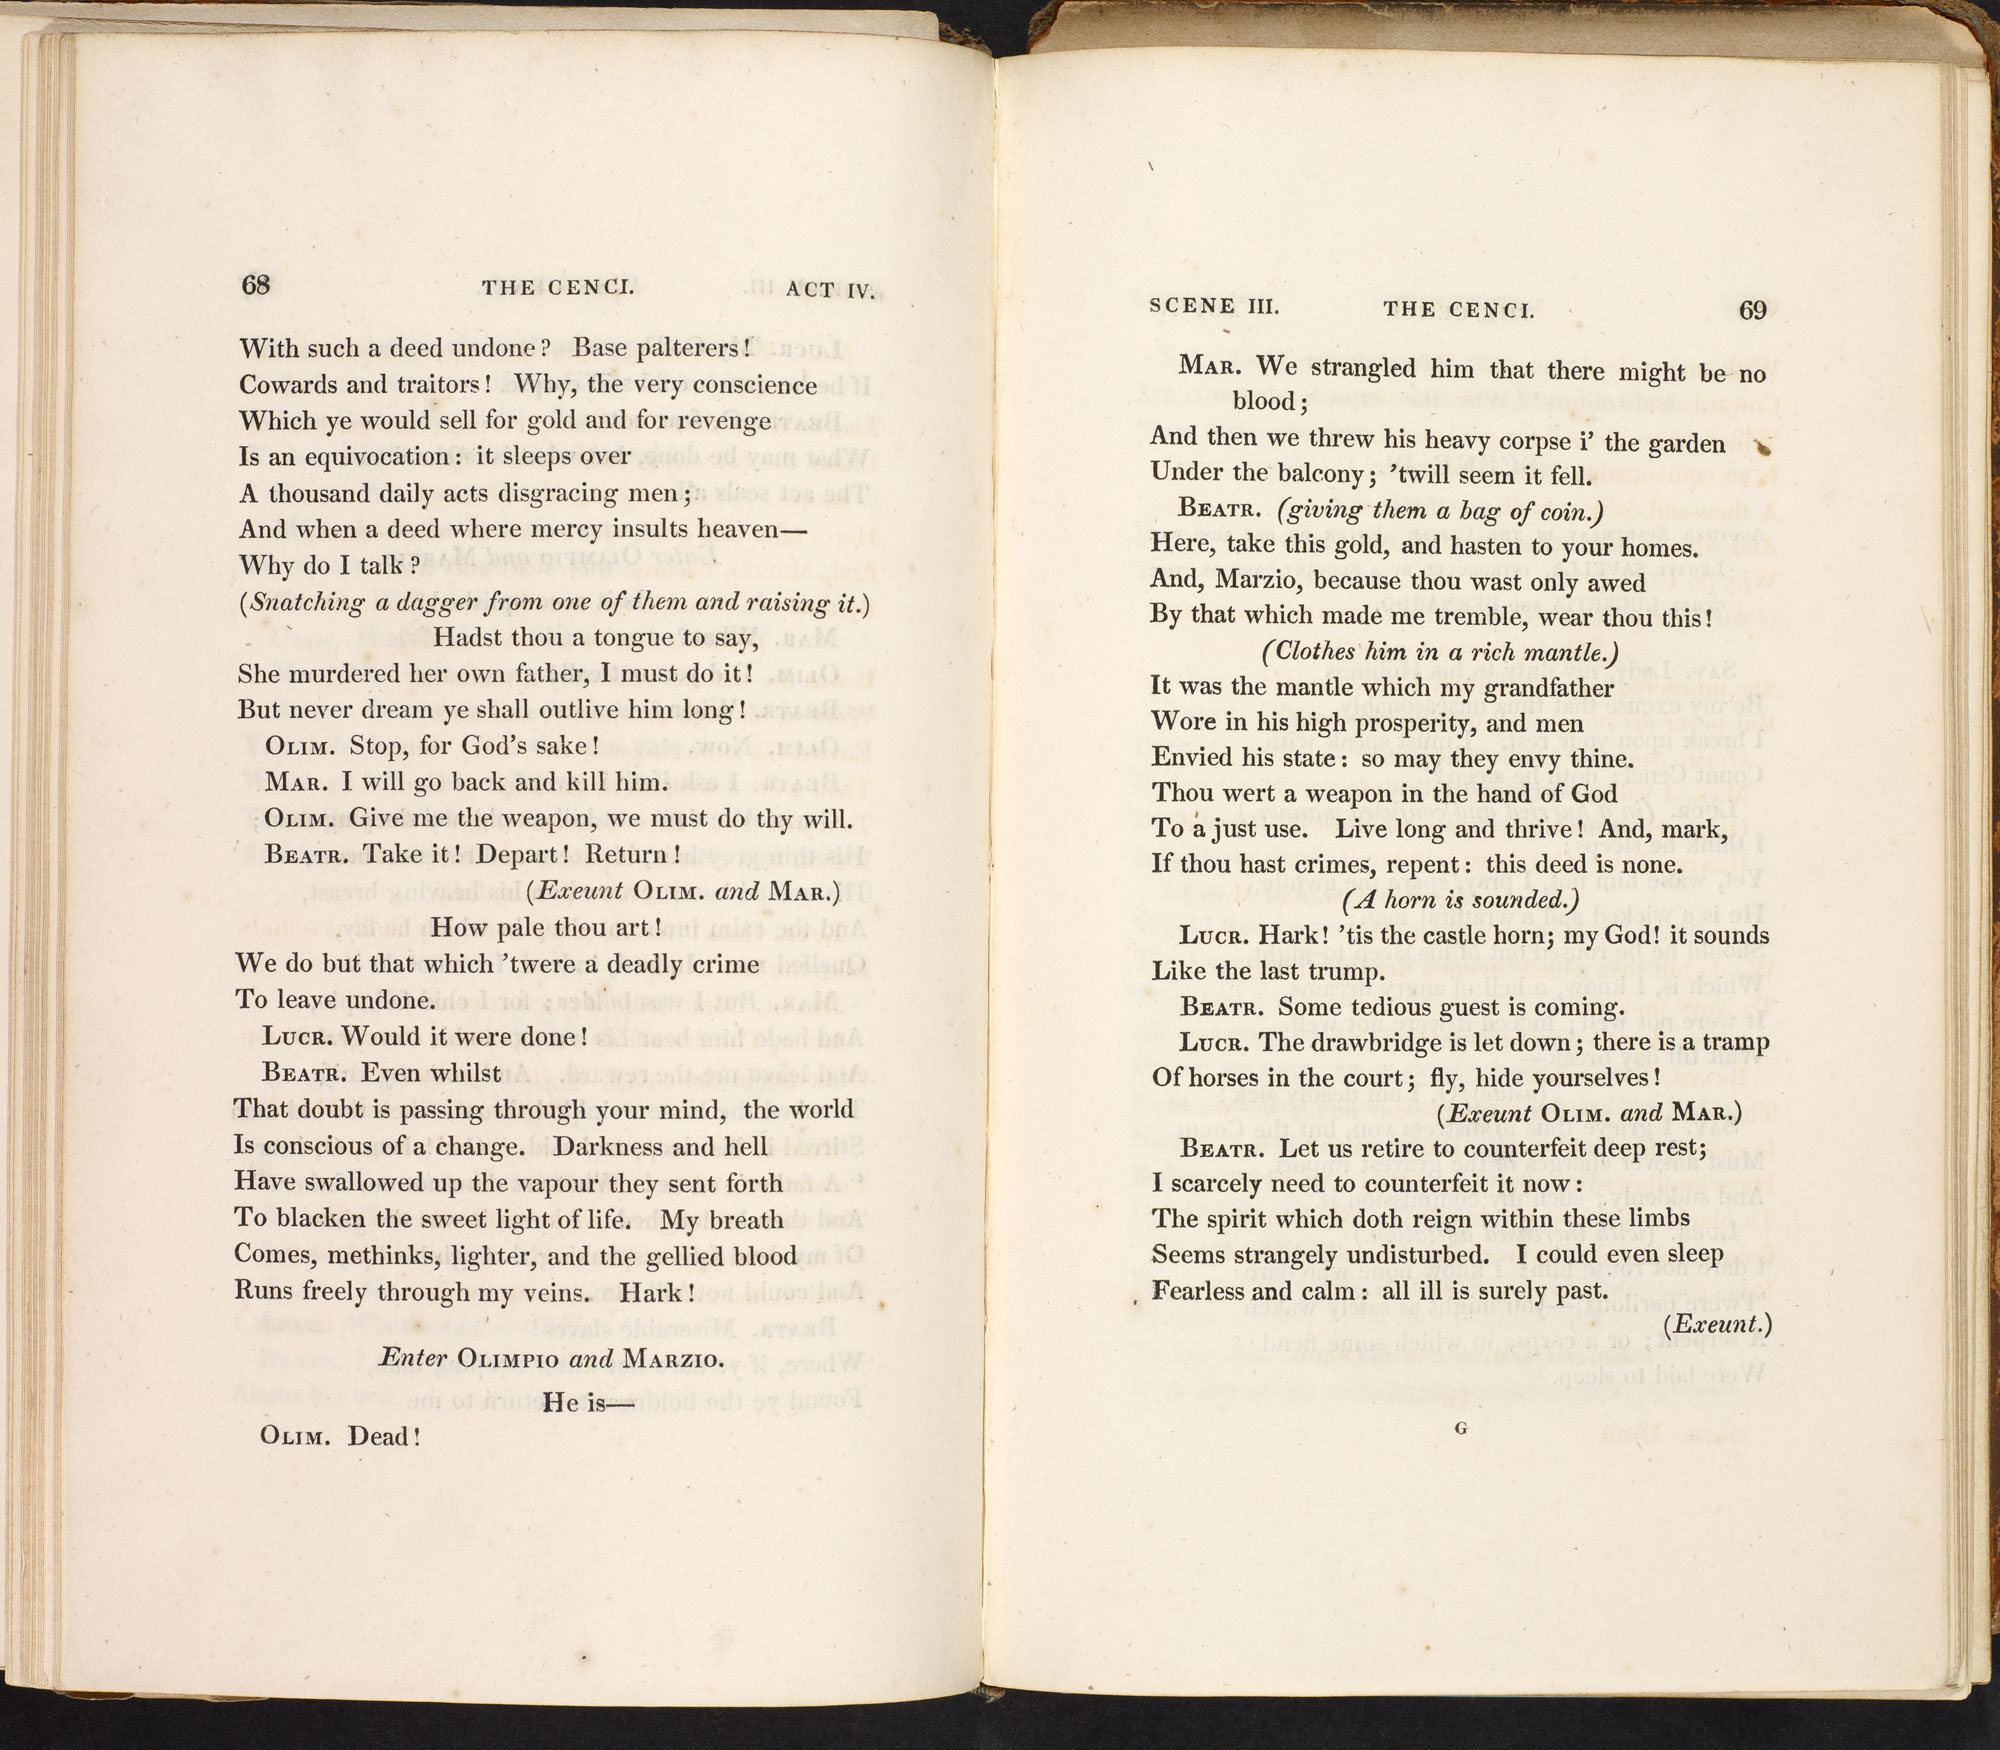 The Cenci by P B Shelley [page: 68-69]